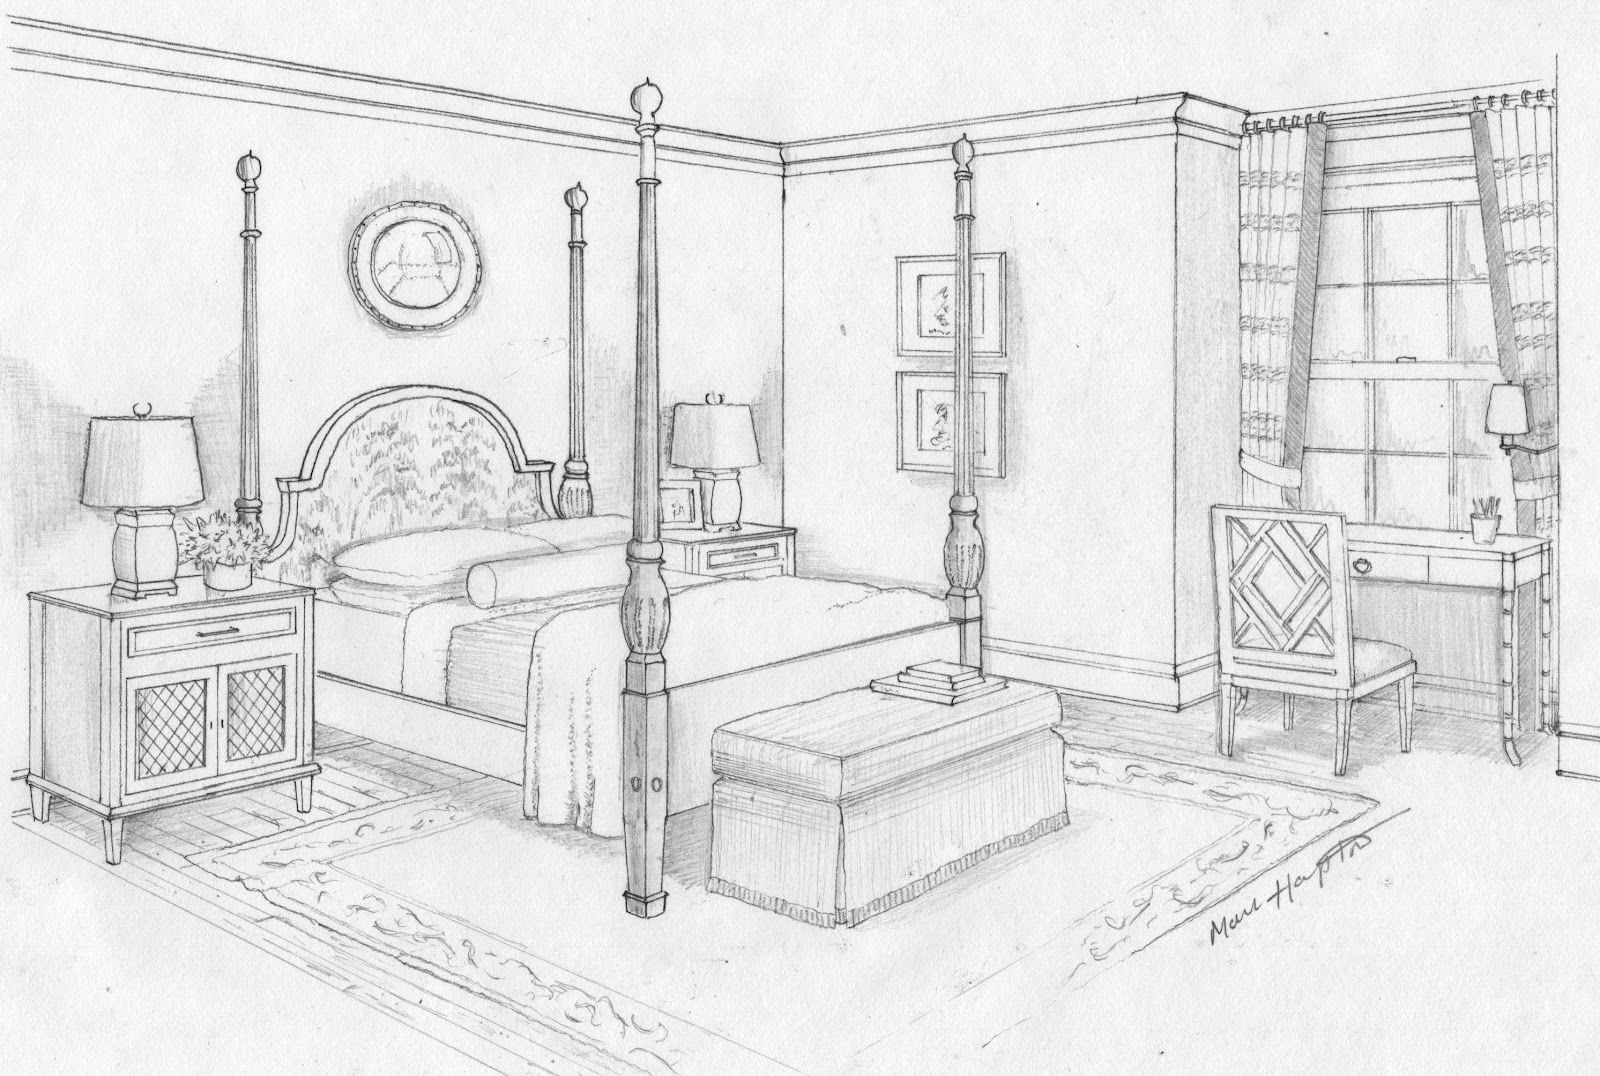 Dream Bedroom Sketch Bedroom Ideas Pictures Art Pinterest